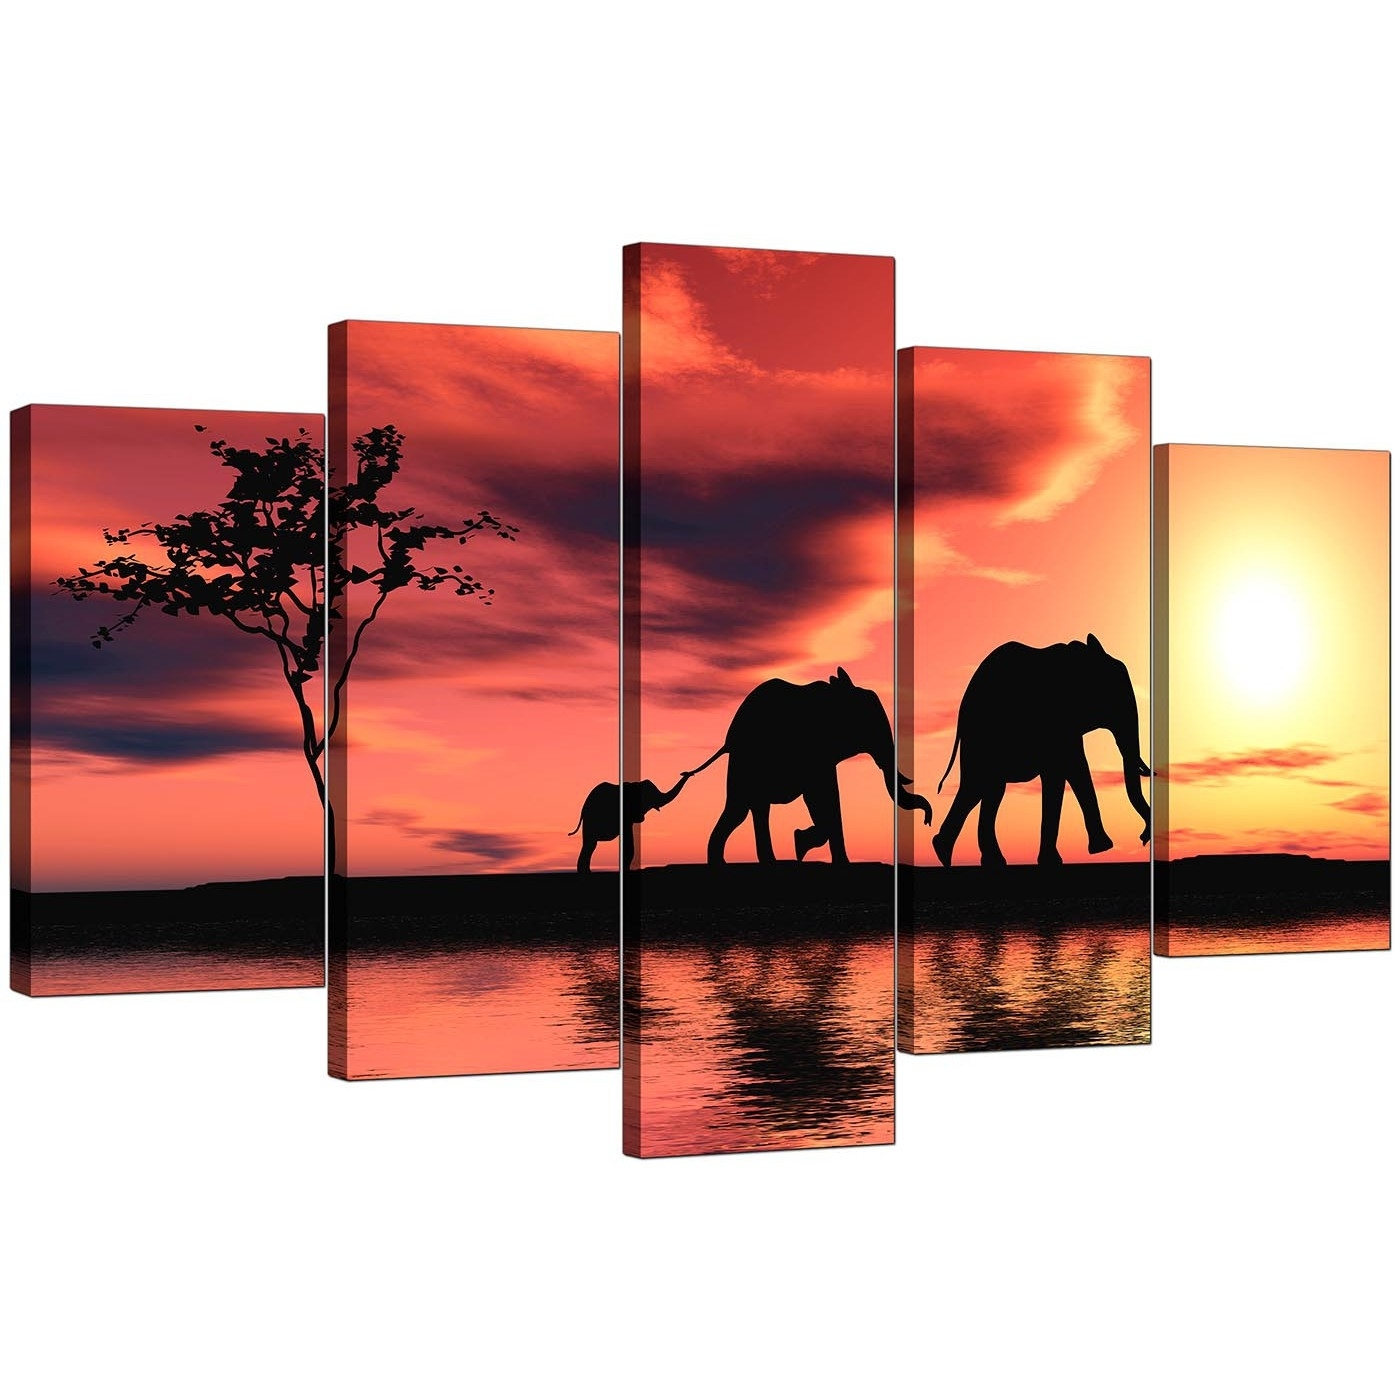 Extra Large Elephants Canvas Prints 5 Piece In Orange Regarding 2018 Orange Canvas Wall Art (Gallery 9 of 15)